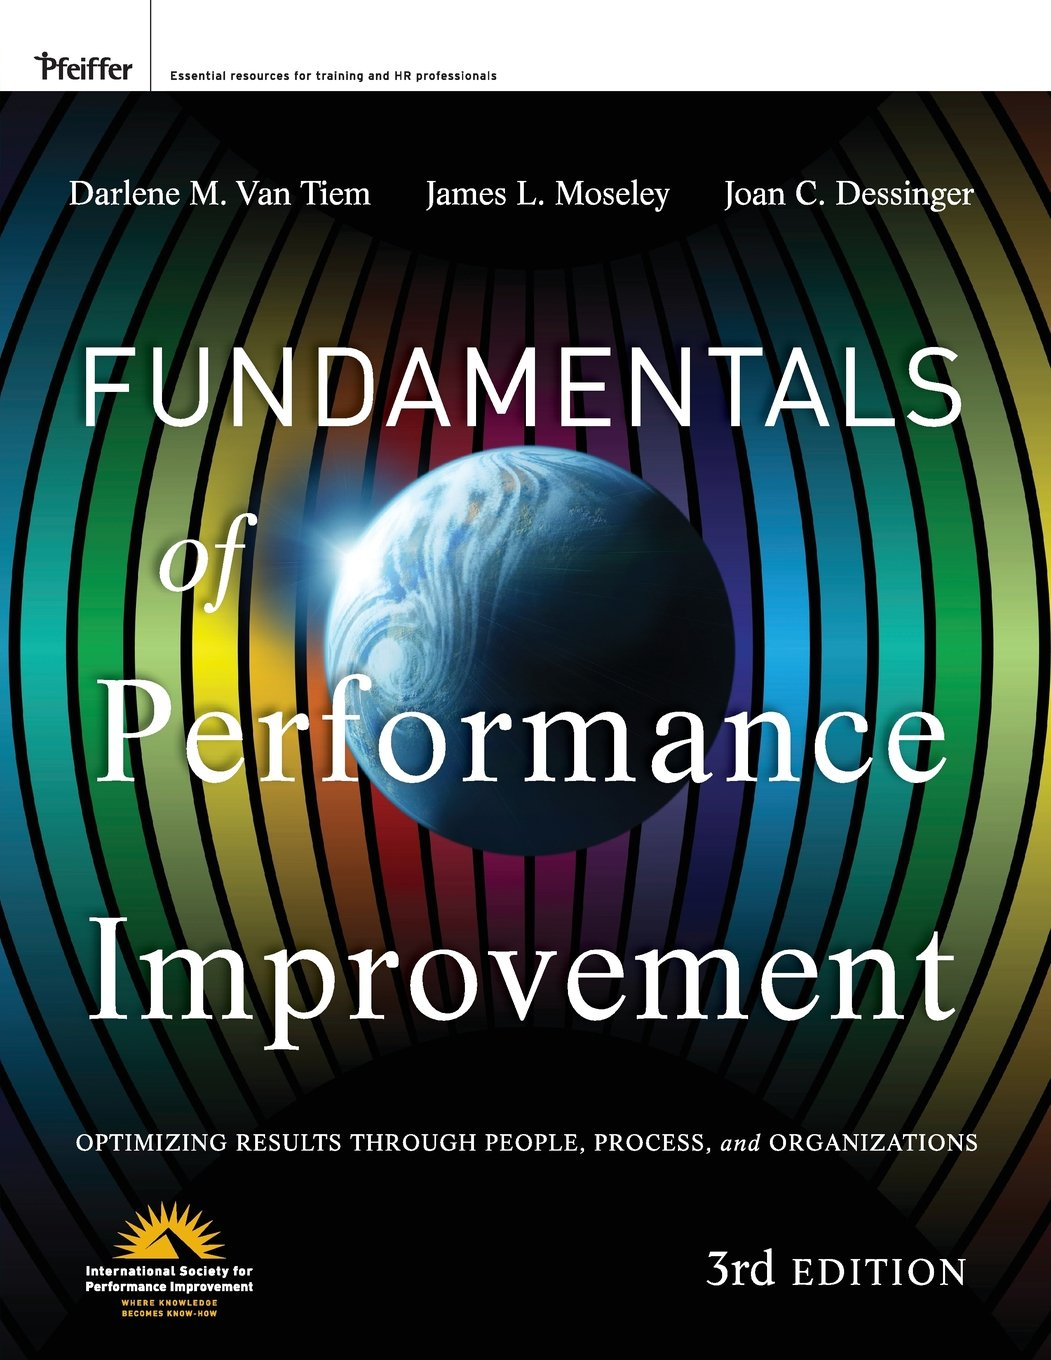 Fundamentals of Performance Improvement: Optimizing Results Through People, Process, and organizations (Inglese) Copertina flessibile – 27 apr 2012 Darlene M. Van Tiem James L. Moseley Joan C. Dessinger Pfeiffer & Co